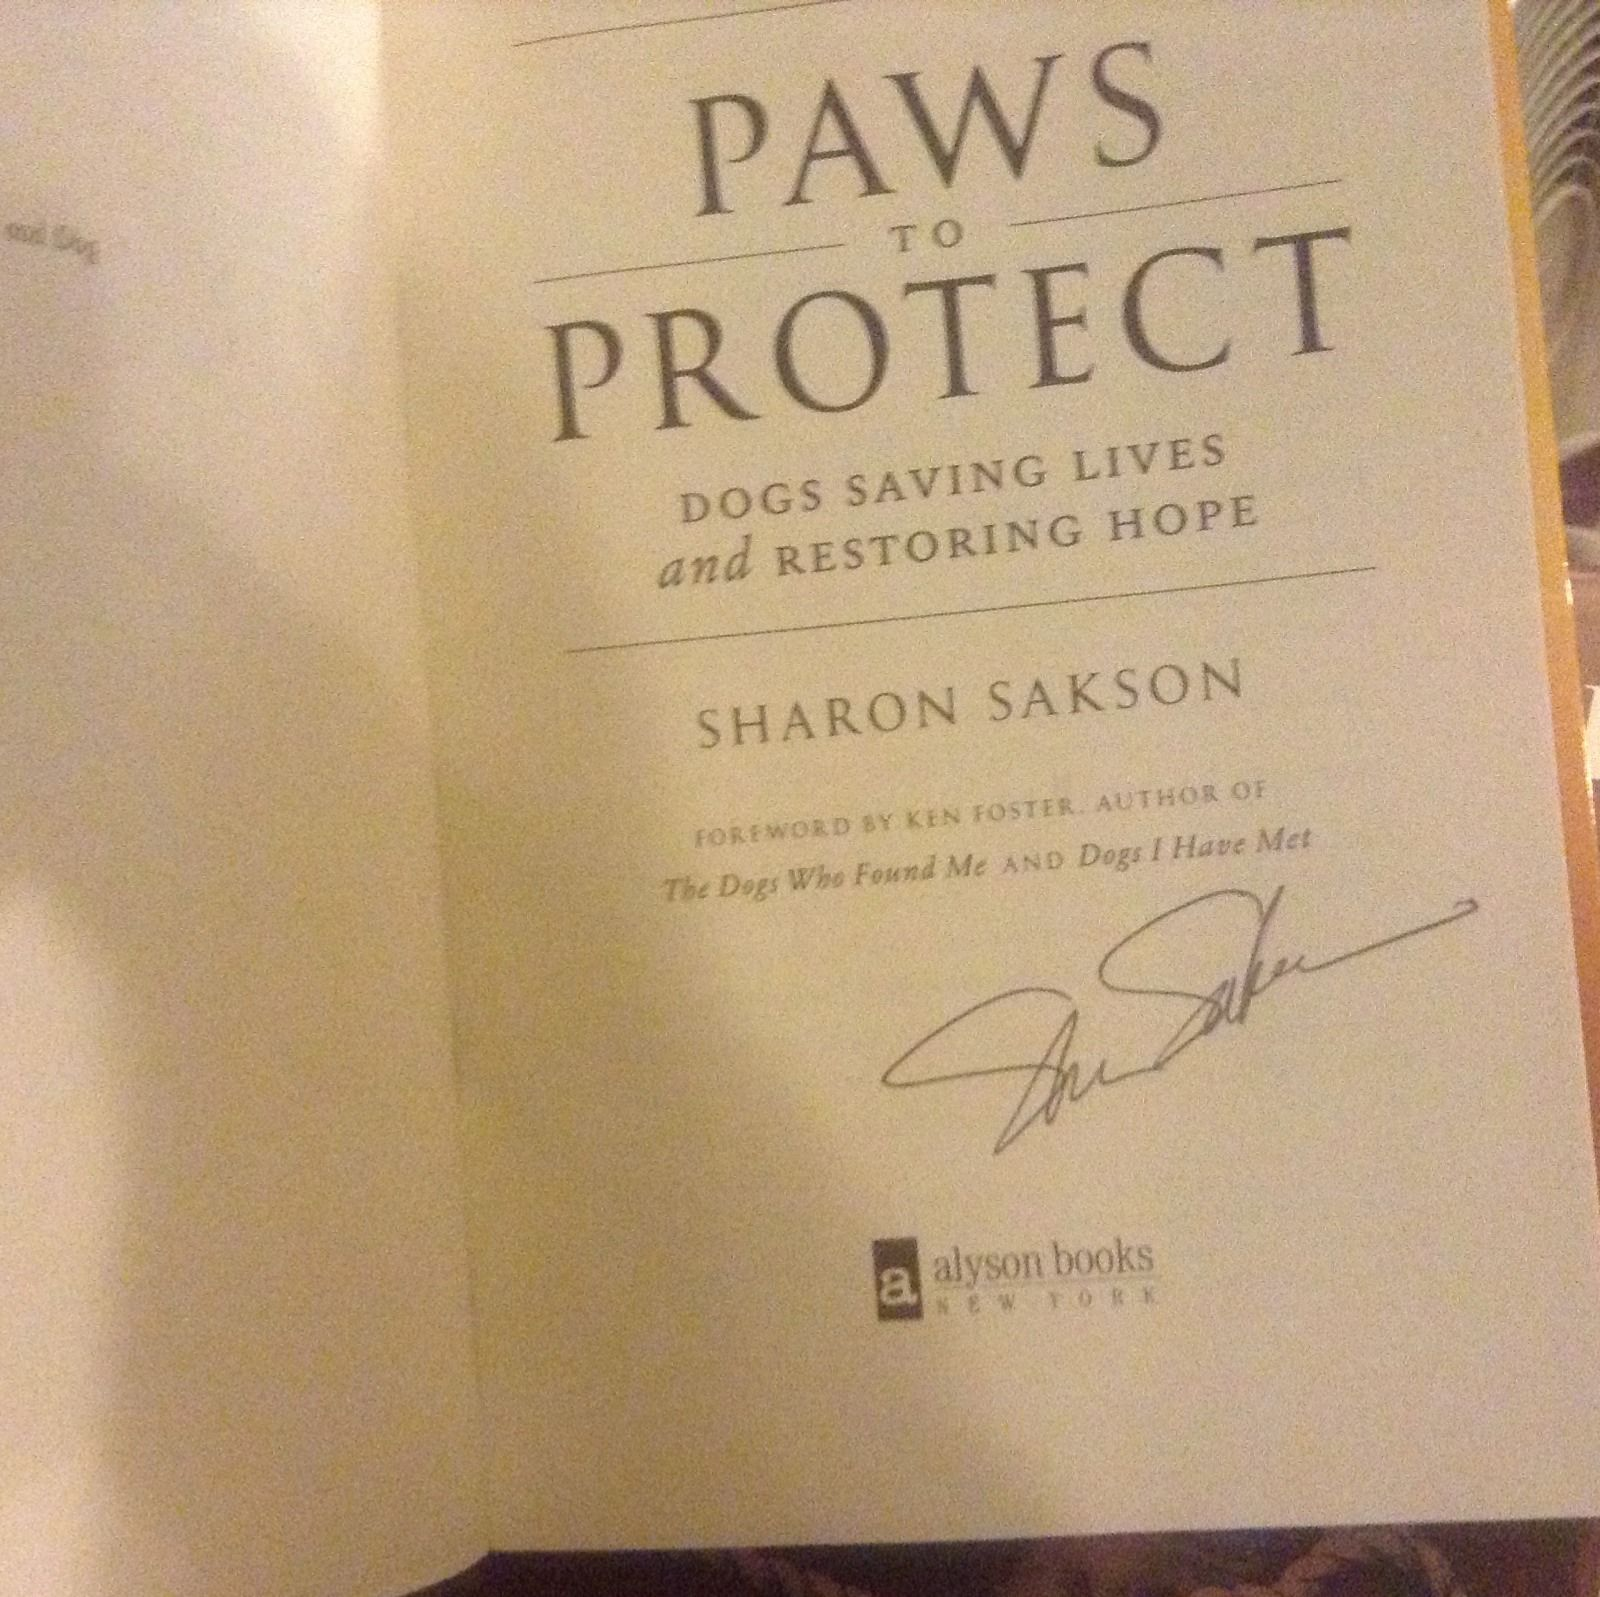 Paws to Protect : Dogs Saving Lives and Restoring Hope SIGNED by Sharon Sakson